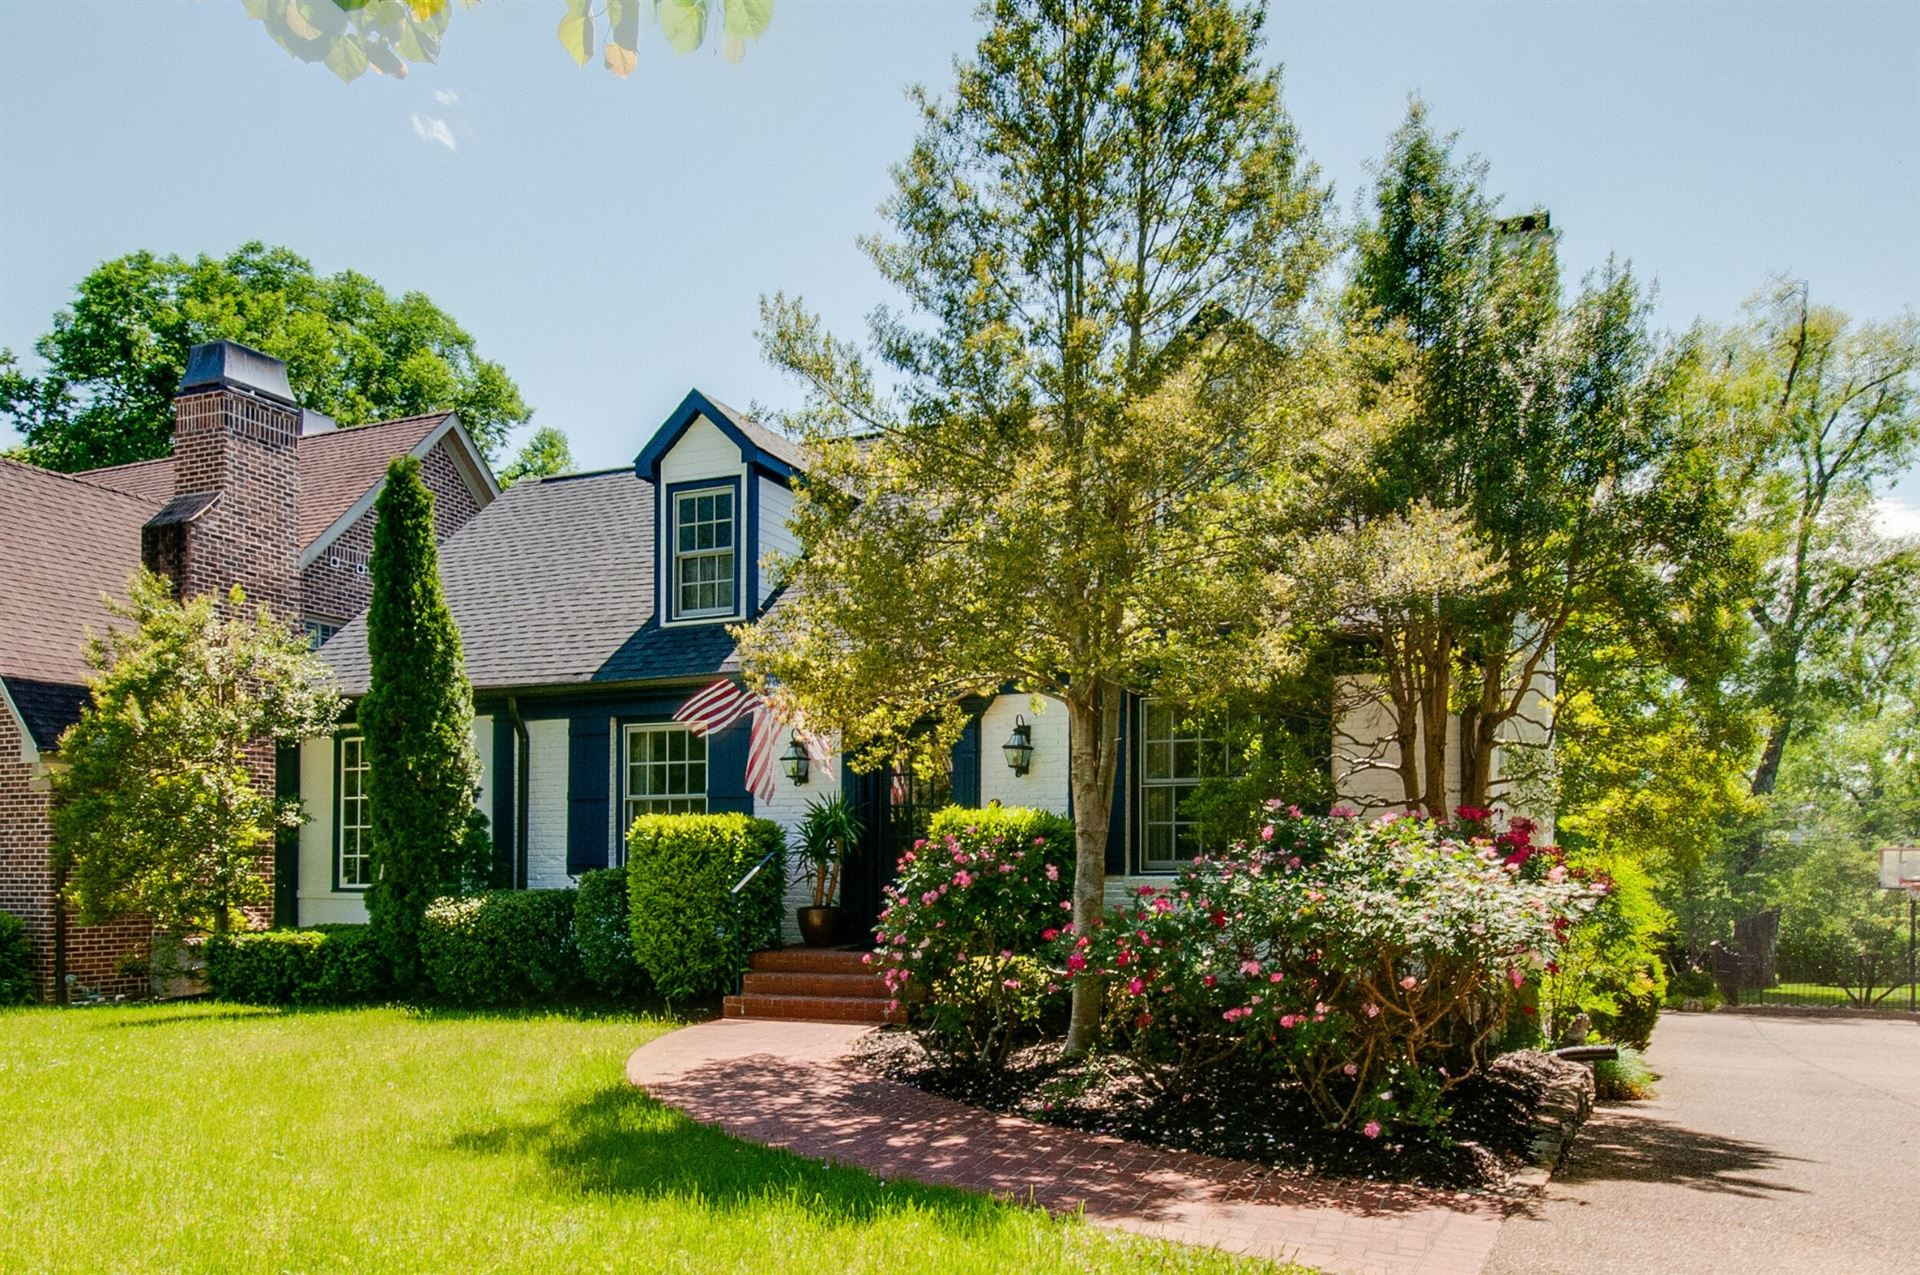 Photo of 120 Blackburn Avenue, Nashville, TN 37205 (MLS # 2156698)